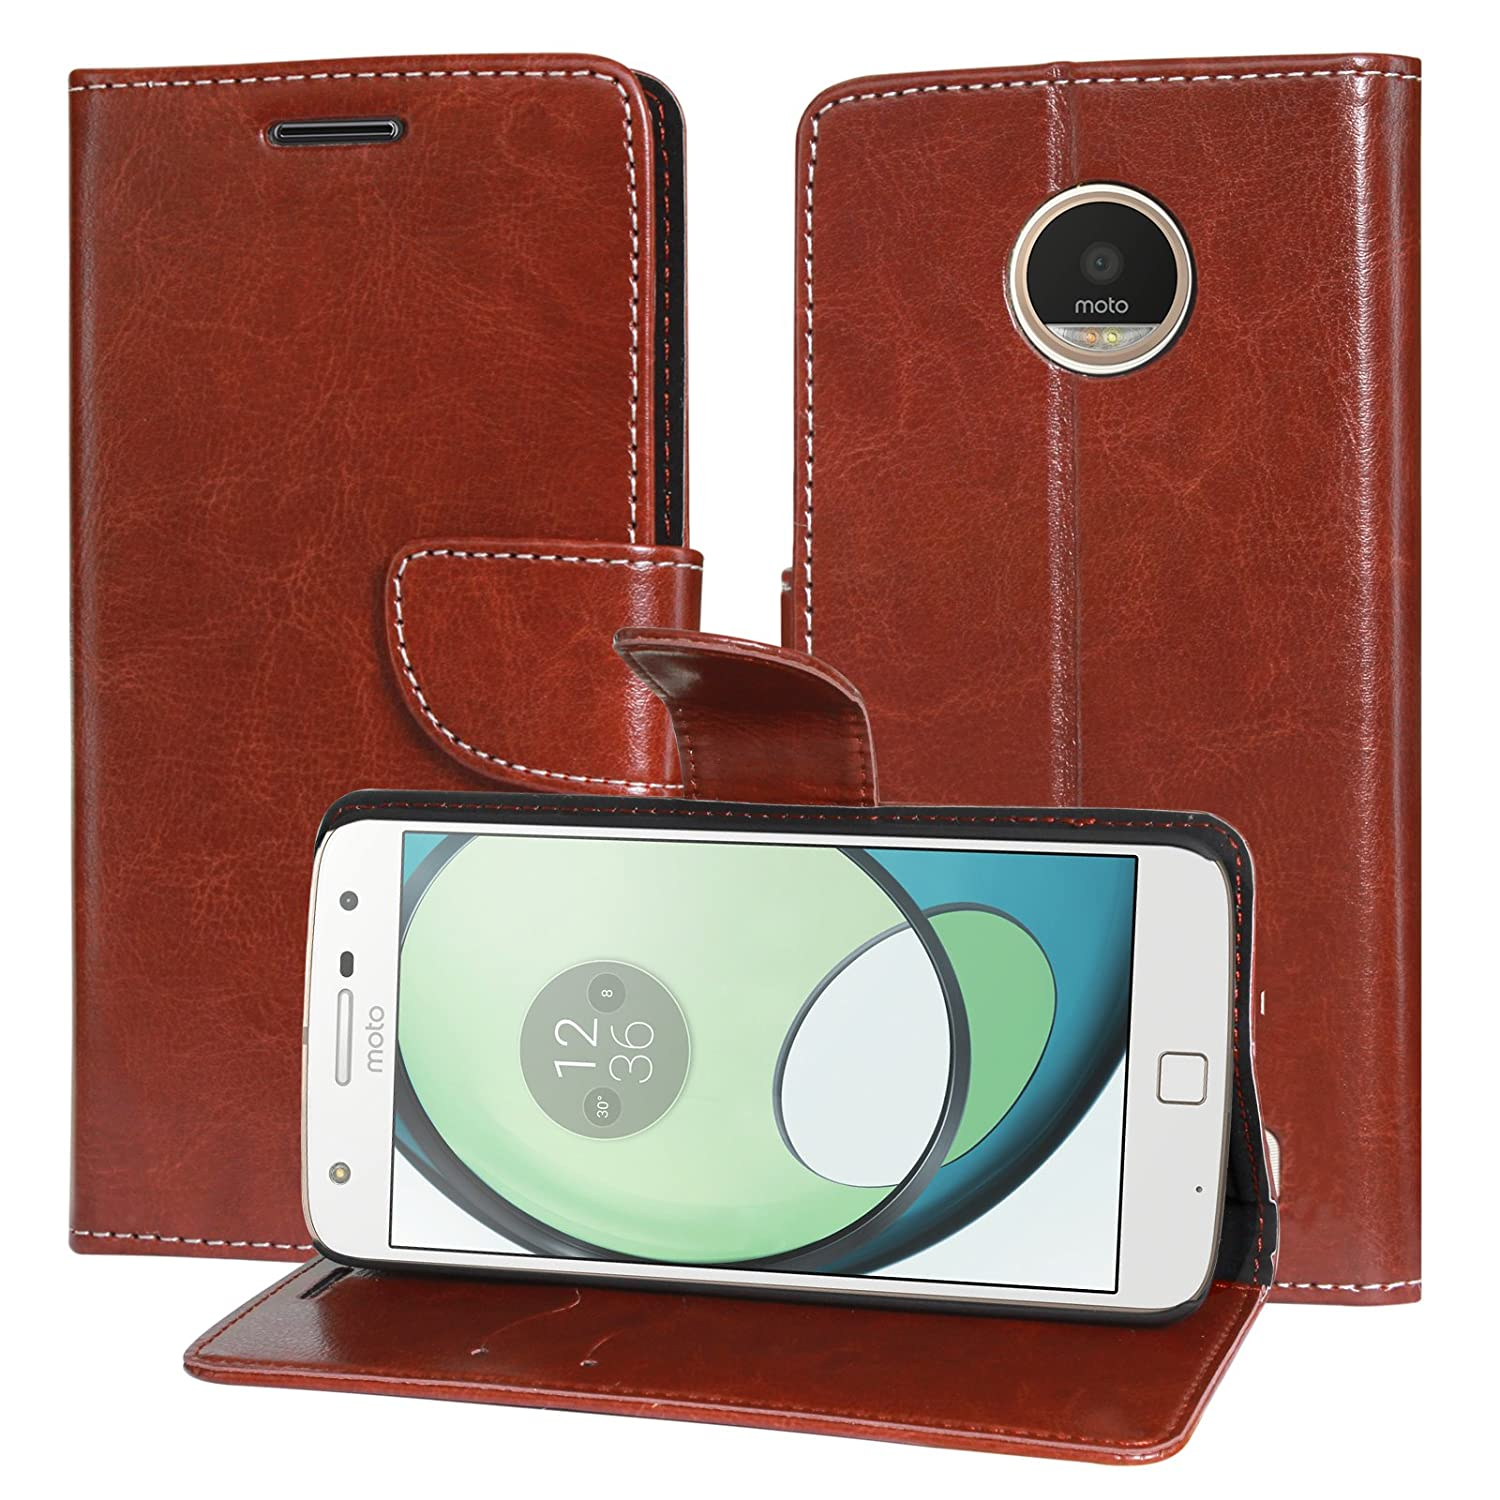 new style 0b787 97279 DMG Motorola Moto Z Play Flip Cover, Sturdy PU Leather Wallet Book Cover  Case for Motorola Moto Z Play (Brown)